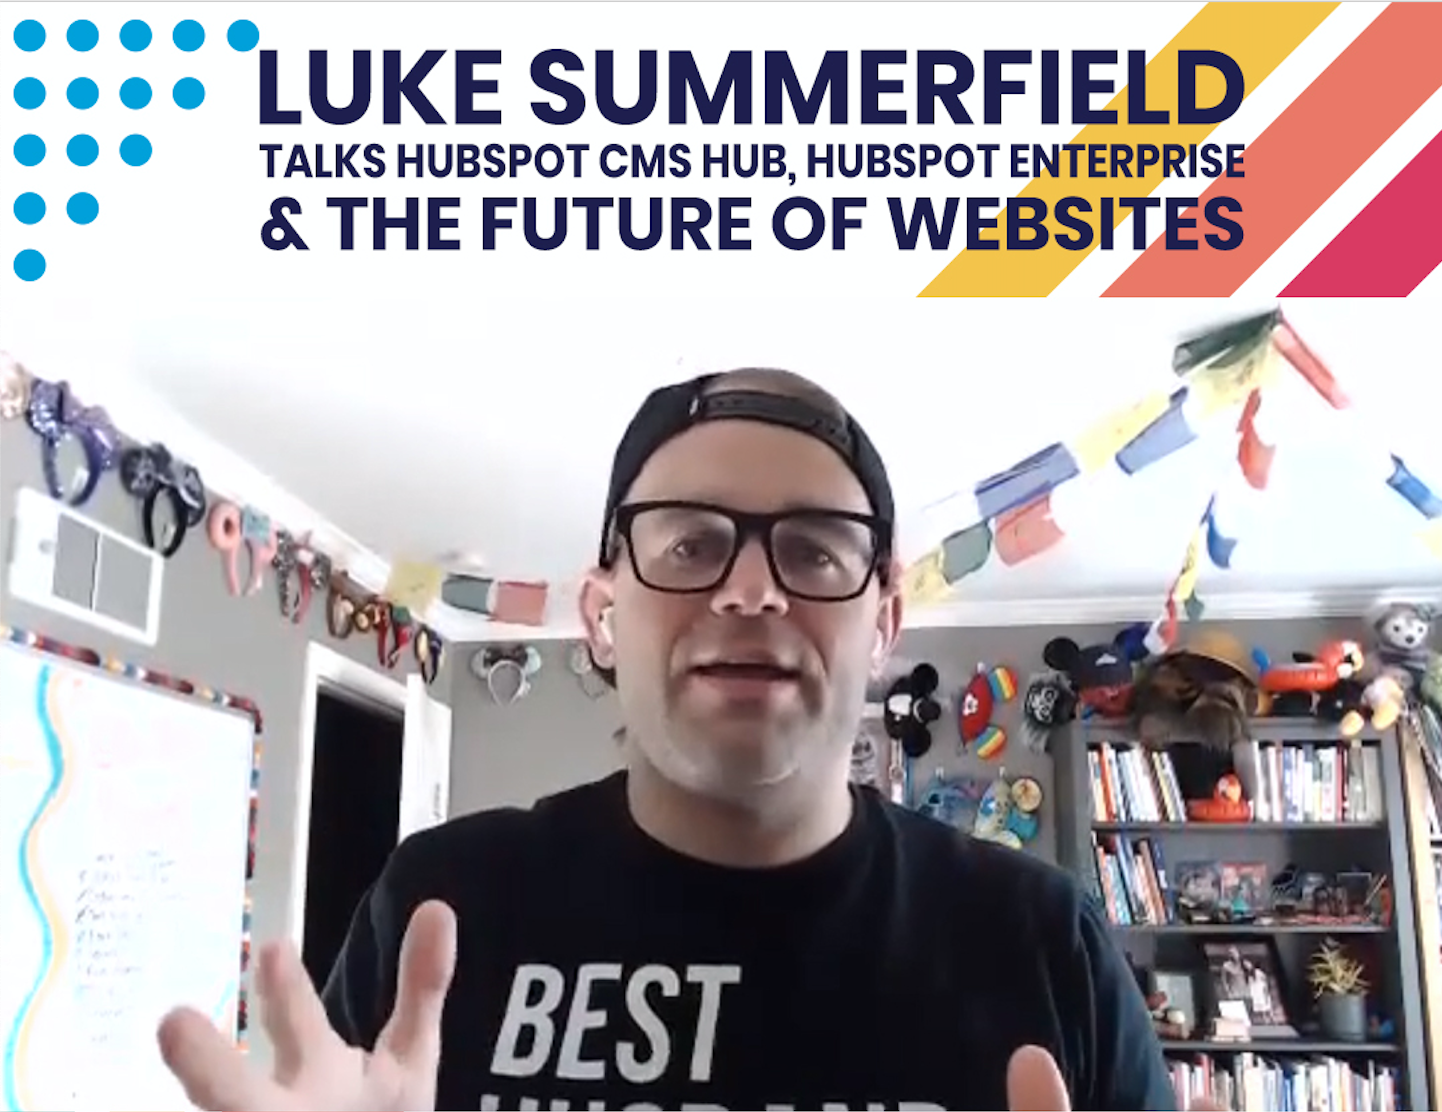 Luke Summerfield talks about HubSpot CMS Hub and the future of websites for business